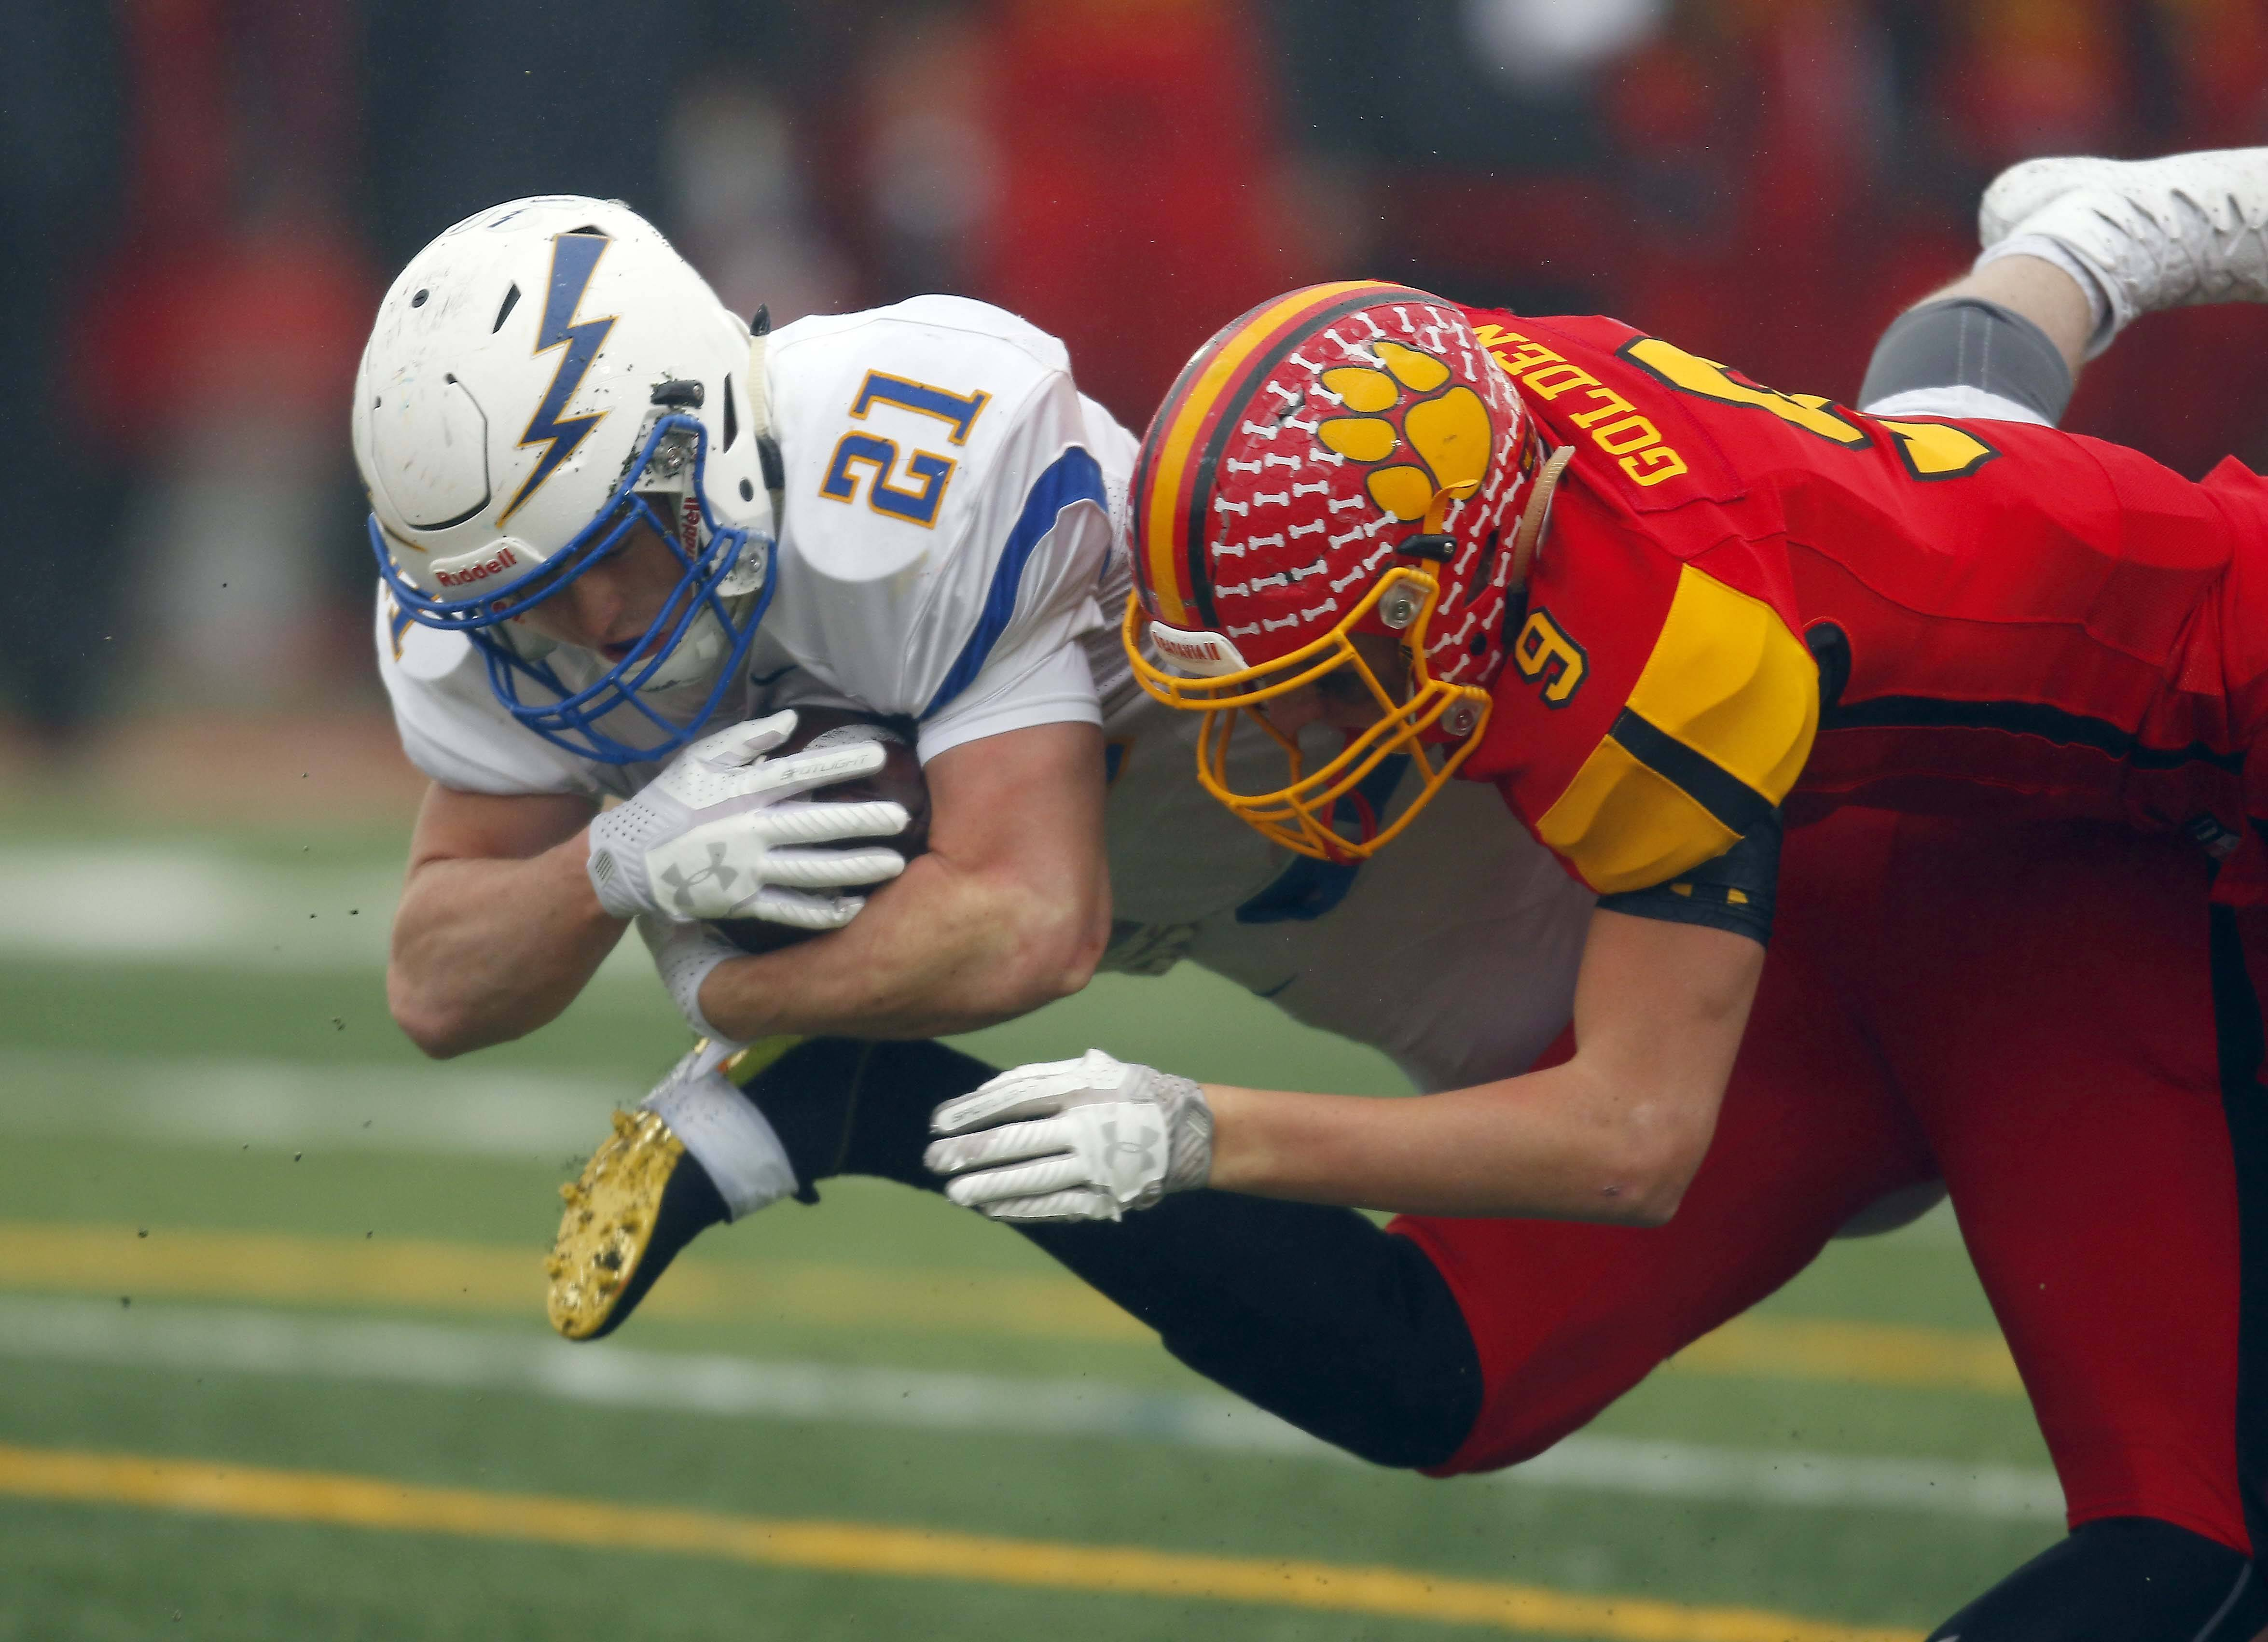 Wheaton North's Sam Singleton (21) and Batavia's John Golden (9) go airborne during a play Saturday during the IHSA Class 7A football playoffs in Batavia.